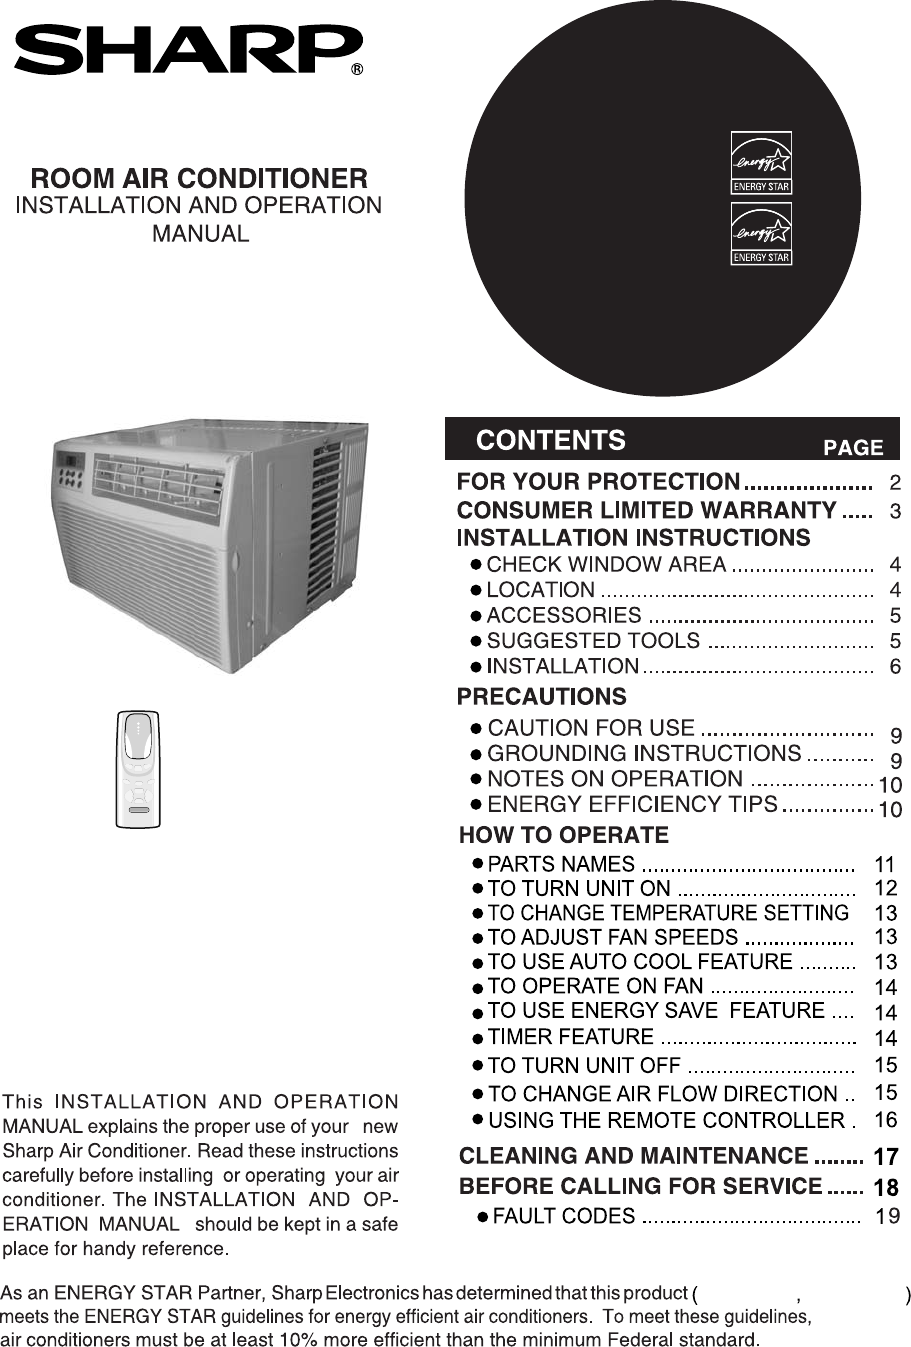 sharp air conditioner 66129902992 user guide